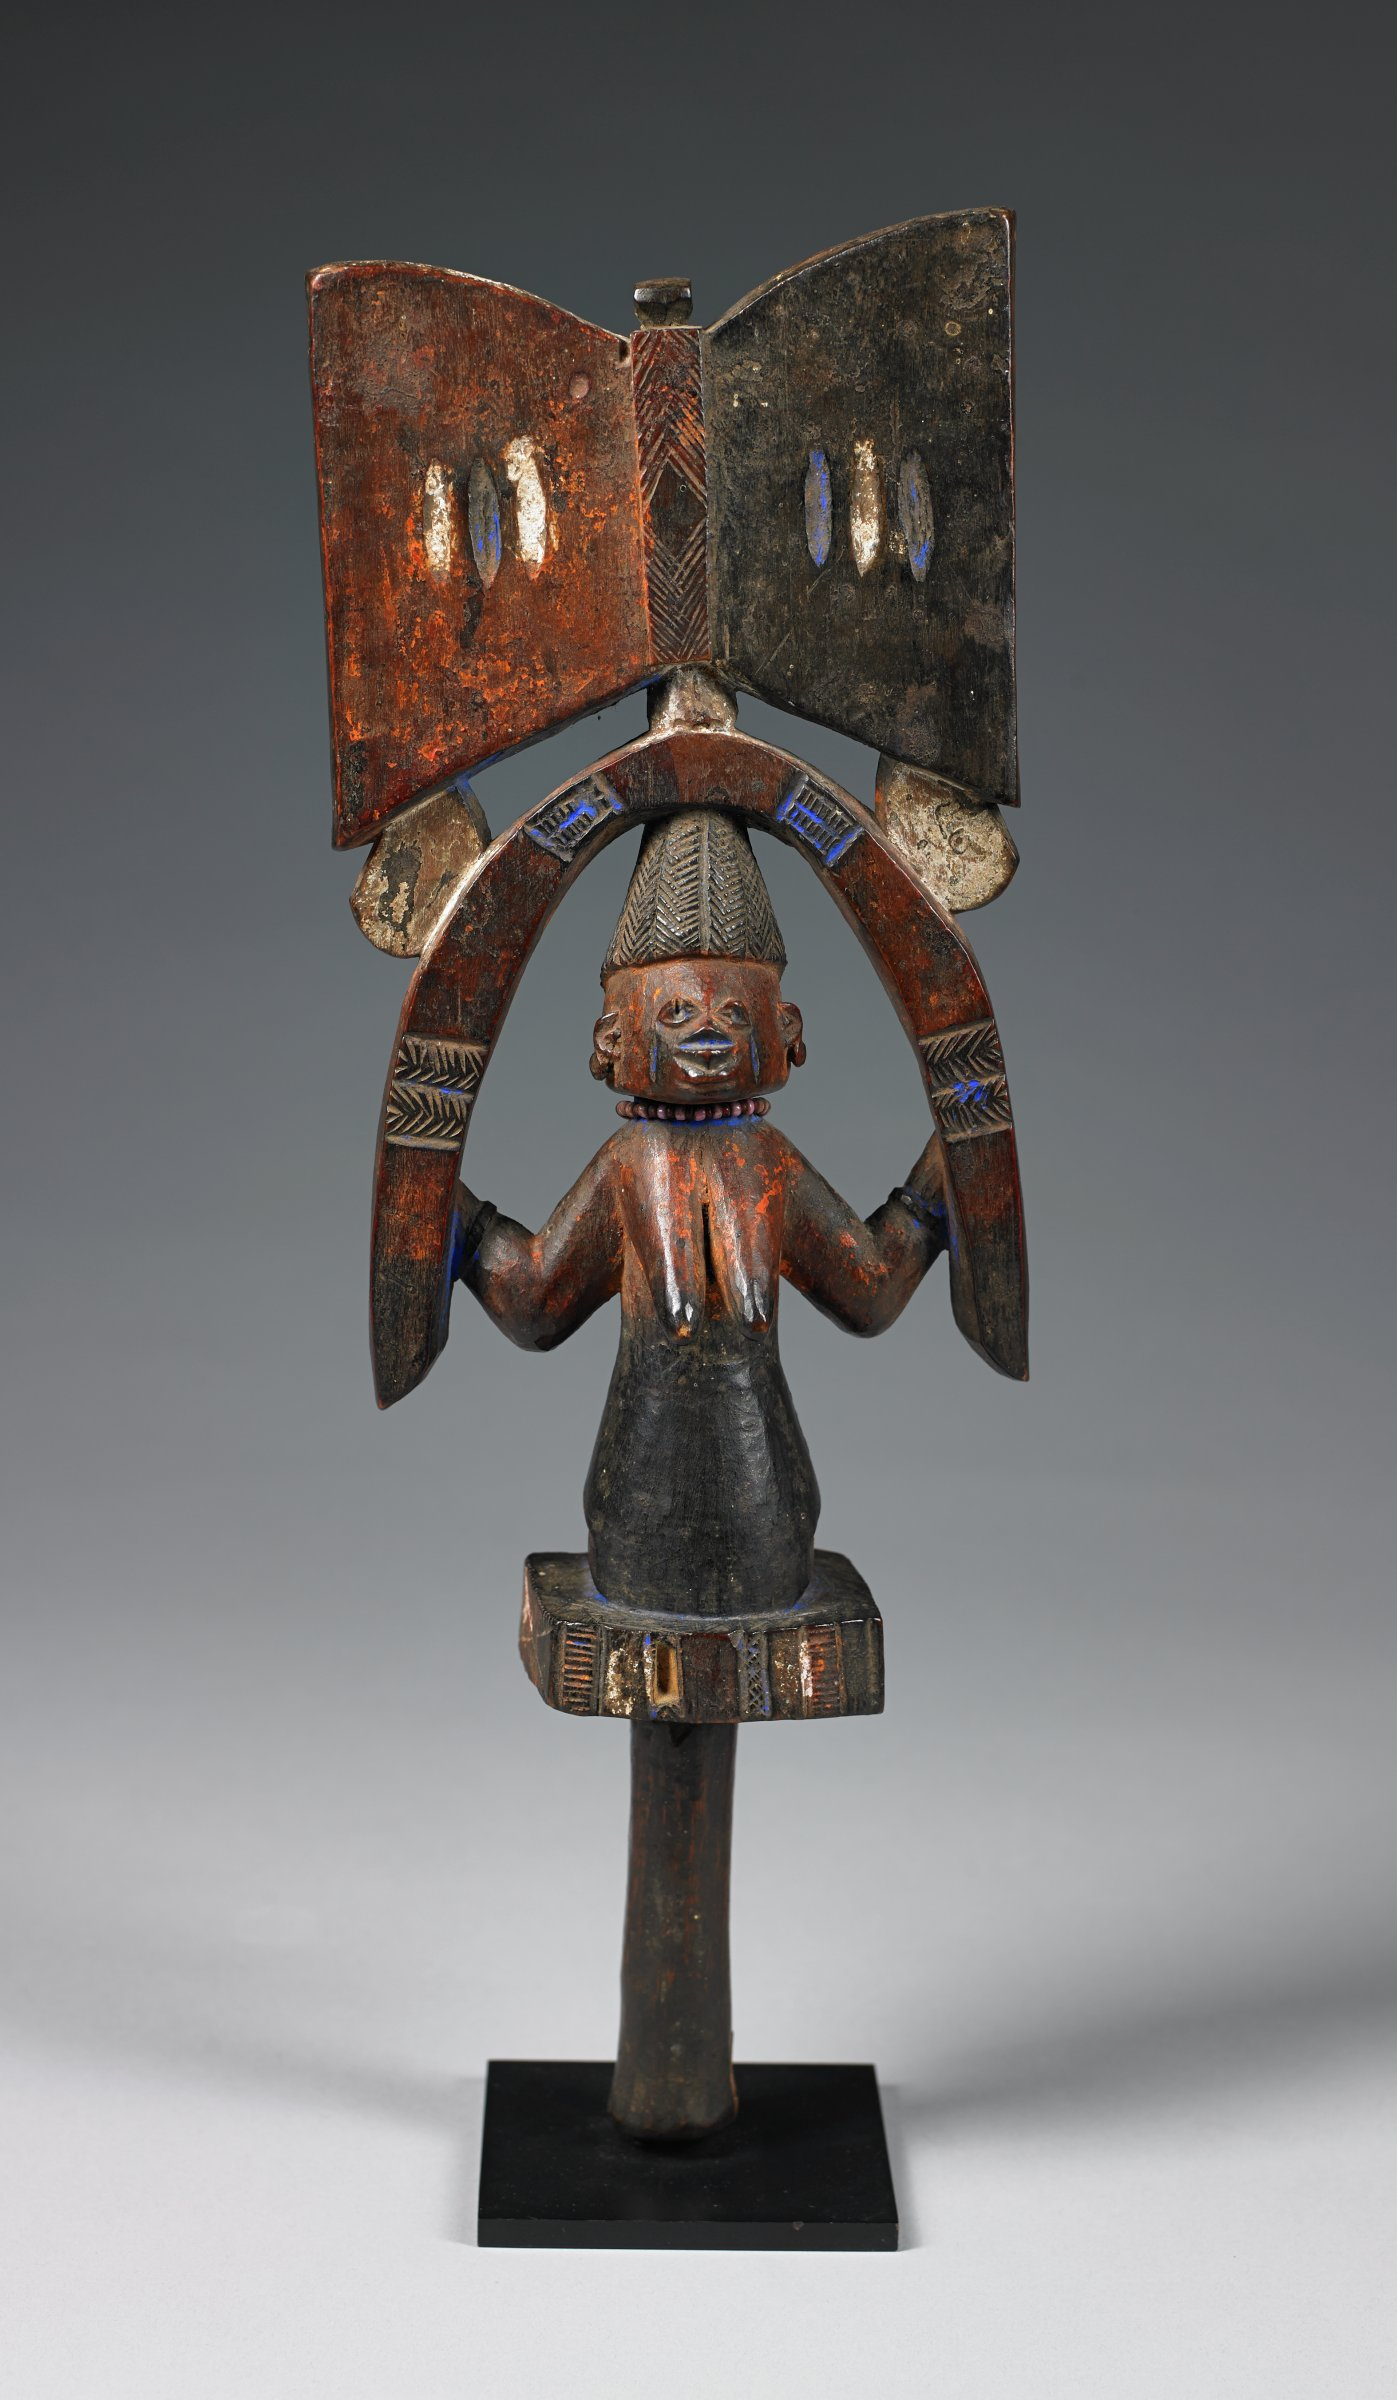 Staff surmounted by the double axe motif, stylized reference to the thunderbolt believed to be hurled from the skies by Shango, with kneeling female figure.